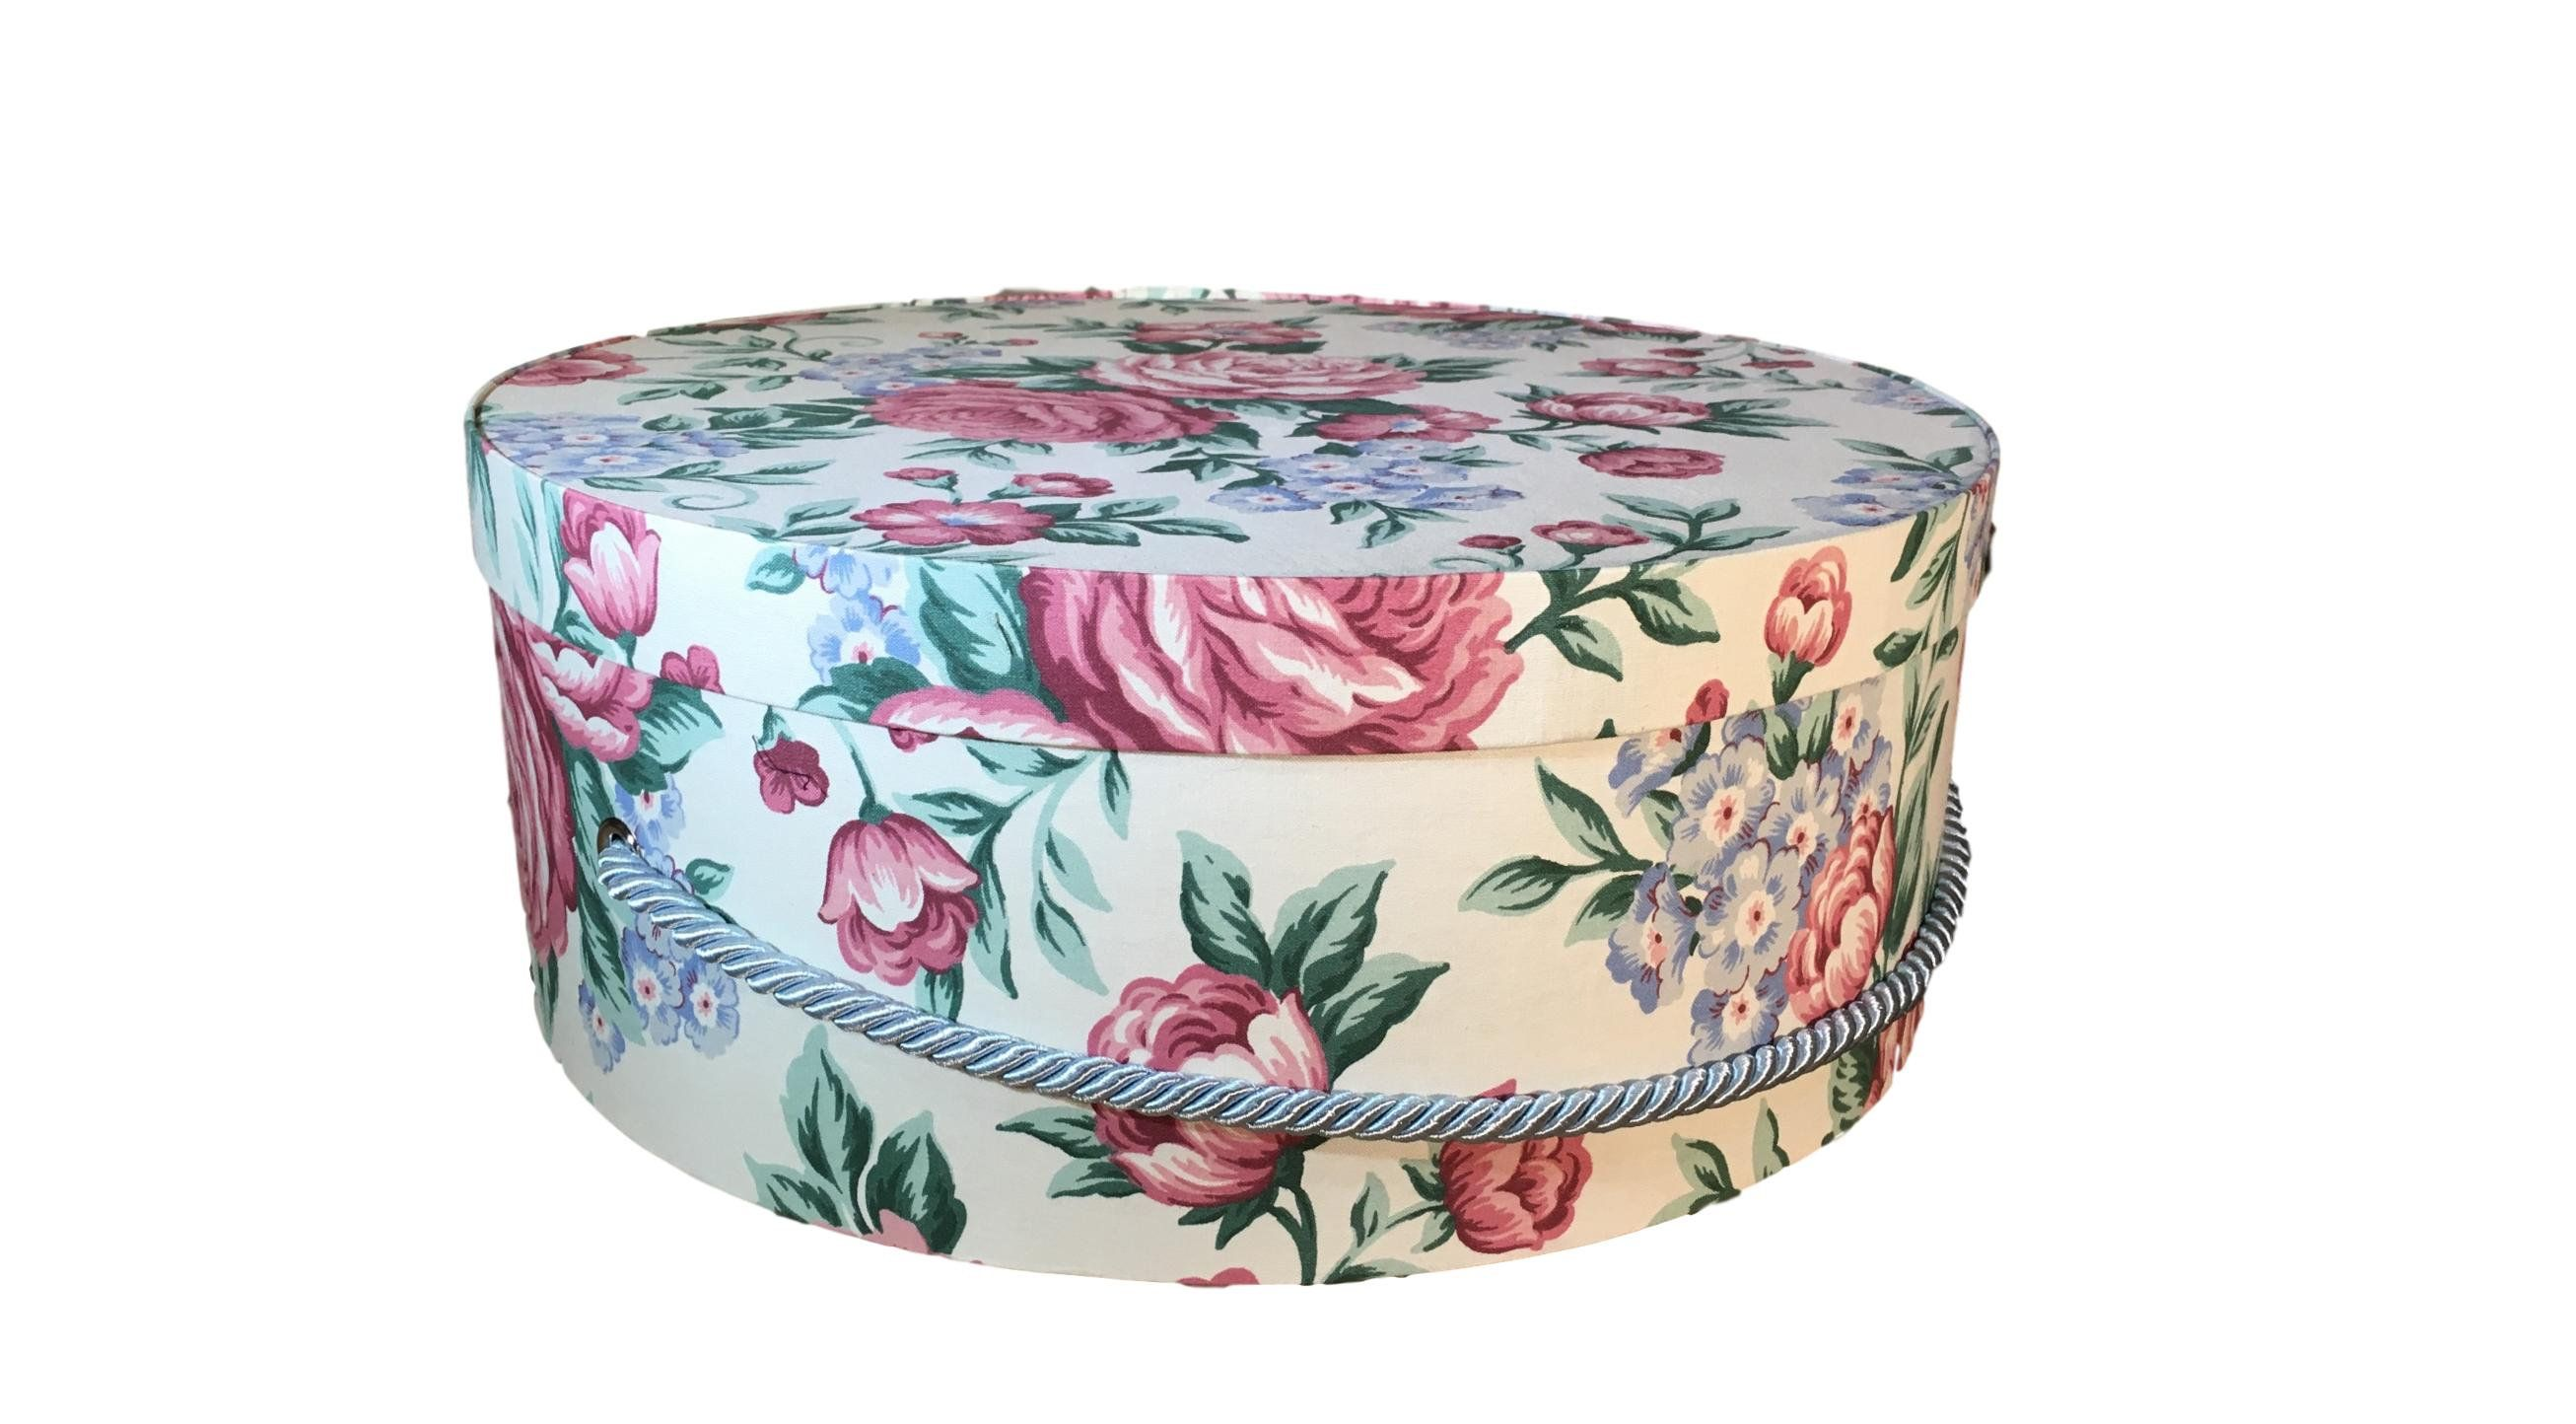 Large 16 Hat Box In Grey French Script Decorative Fabric Covered Hat Boxes Round Storage Box Keepsake Boxes With Lid Ne Fabric Decor Luxury Hats Hat Boxes